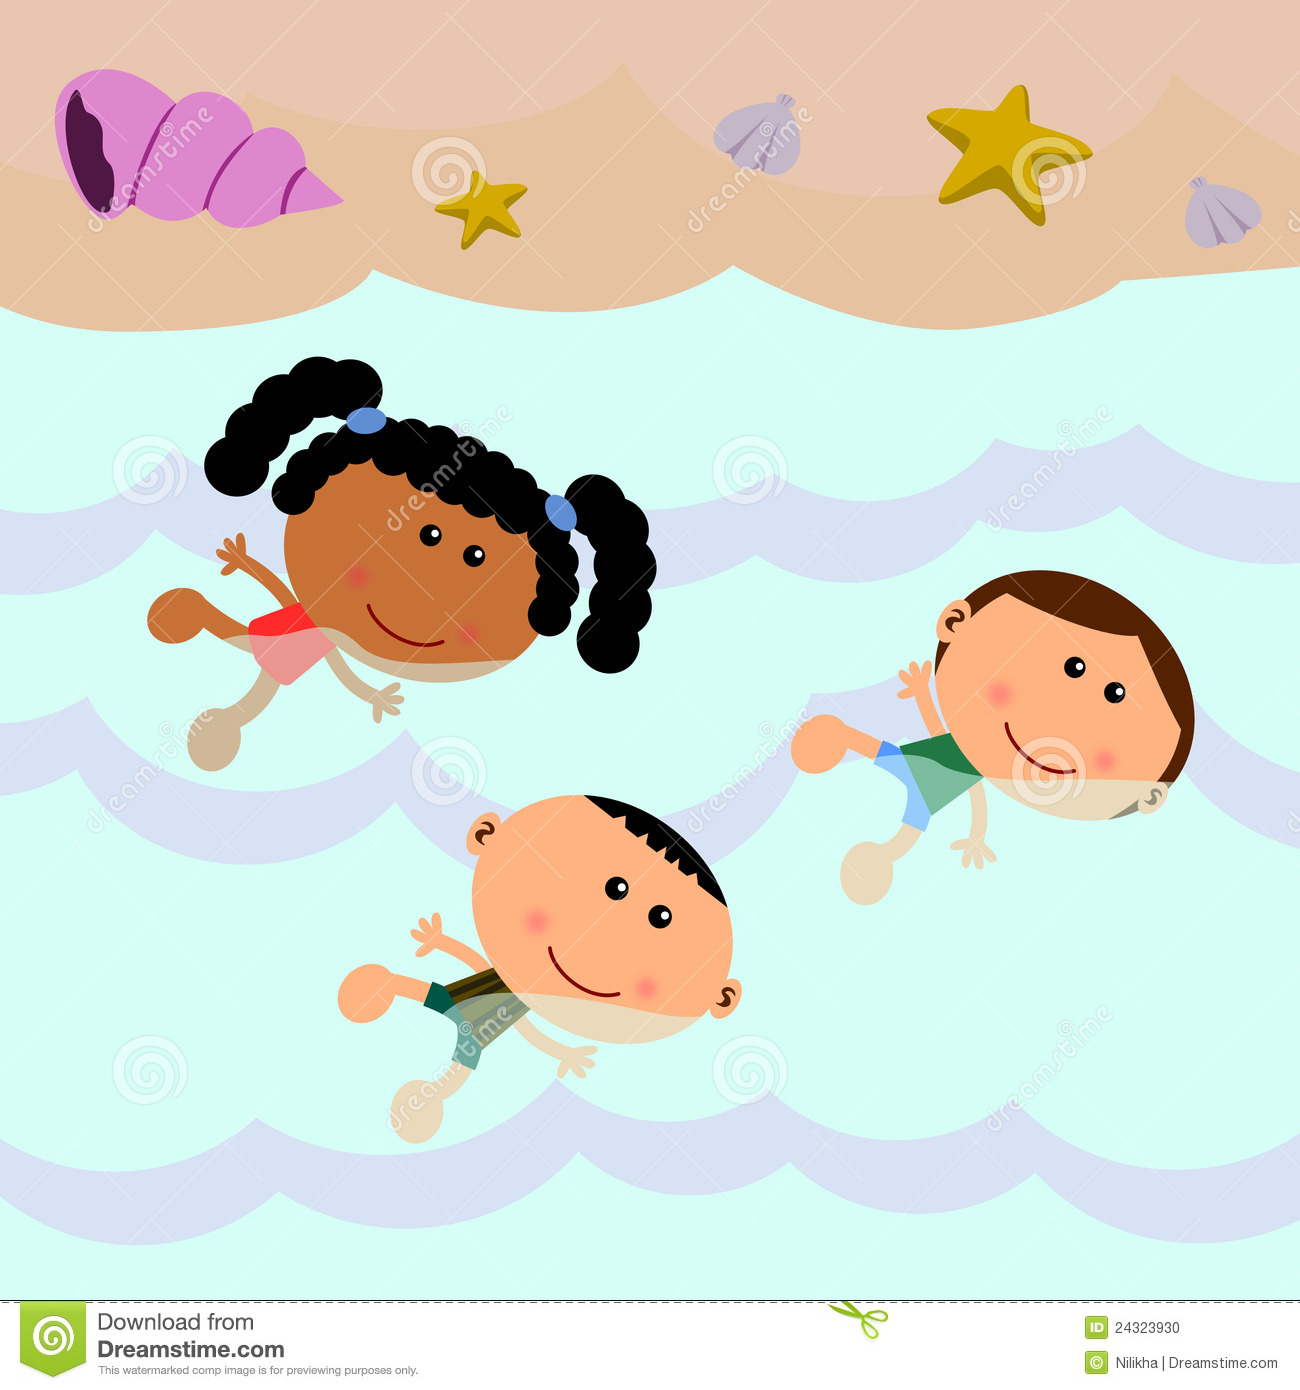 Beach scene composed of a group of cute cartoon kids swimming.